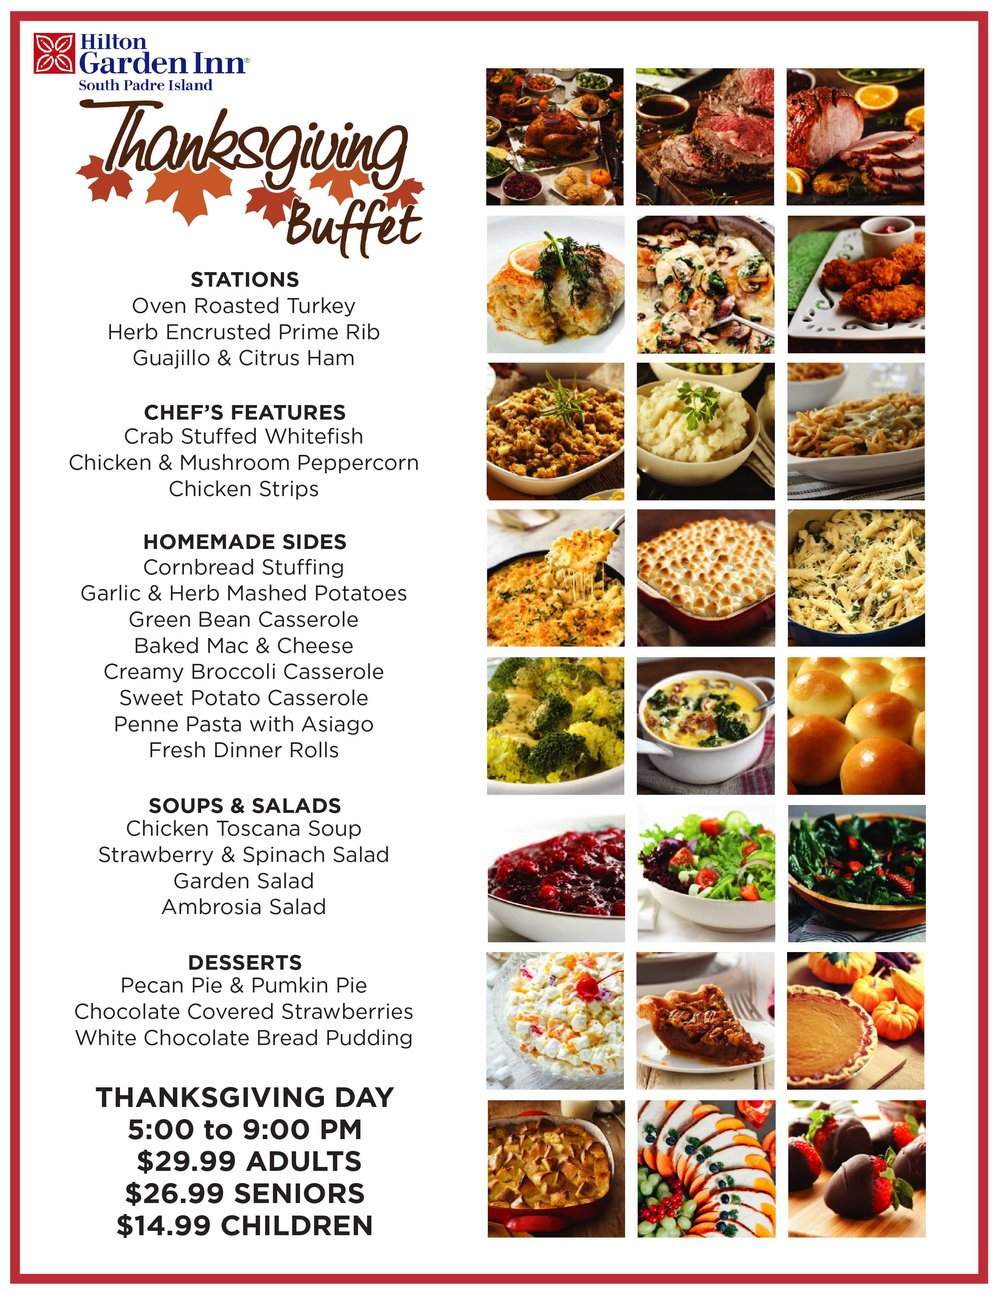 Artboard 1hilton thanksgiving.jpg